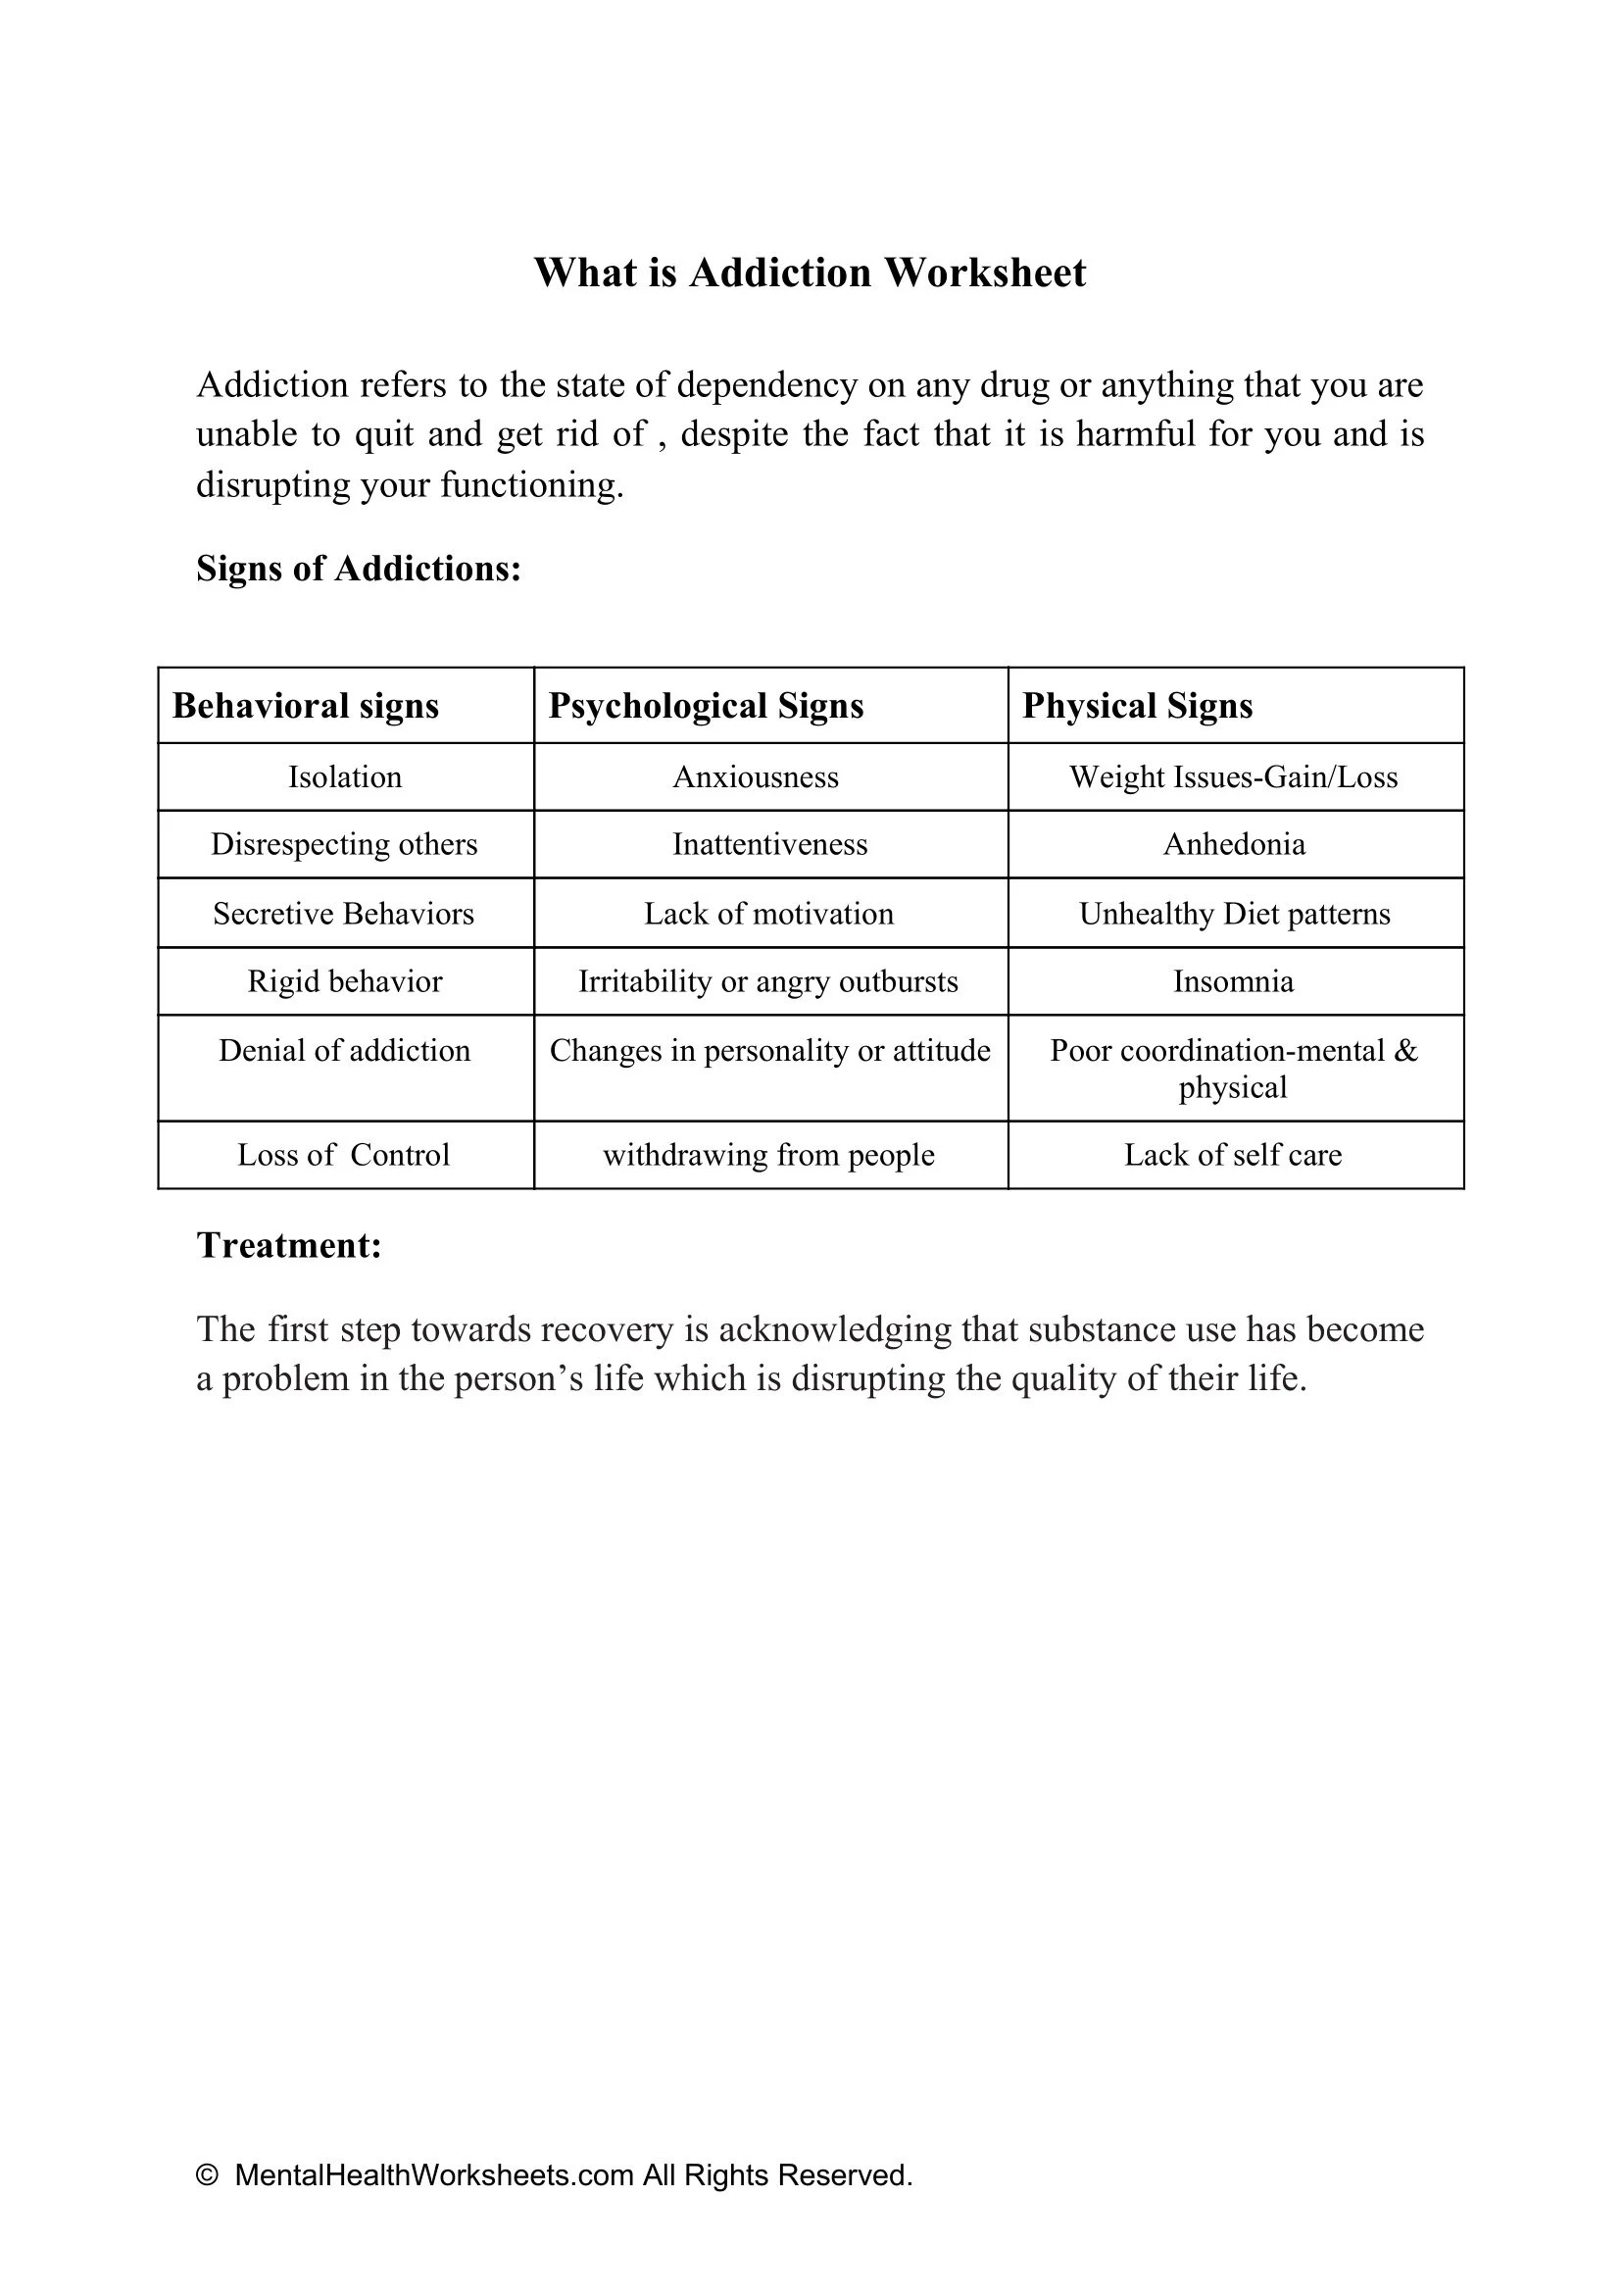 What Is Addiction Worksheet